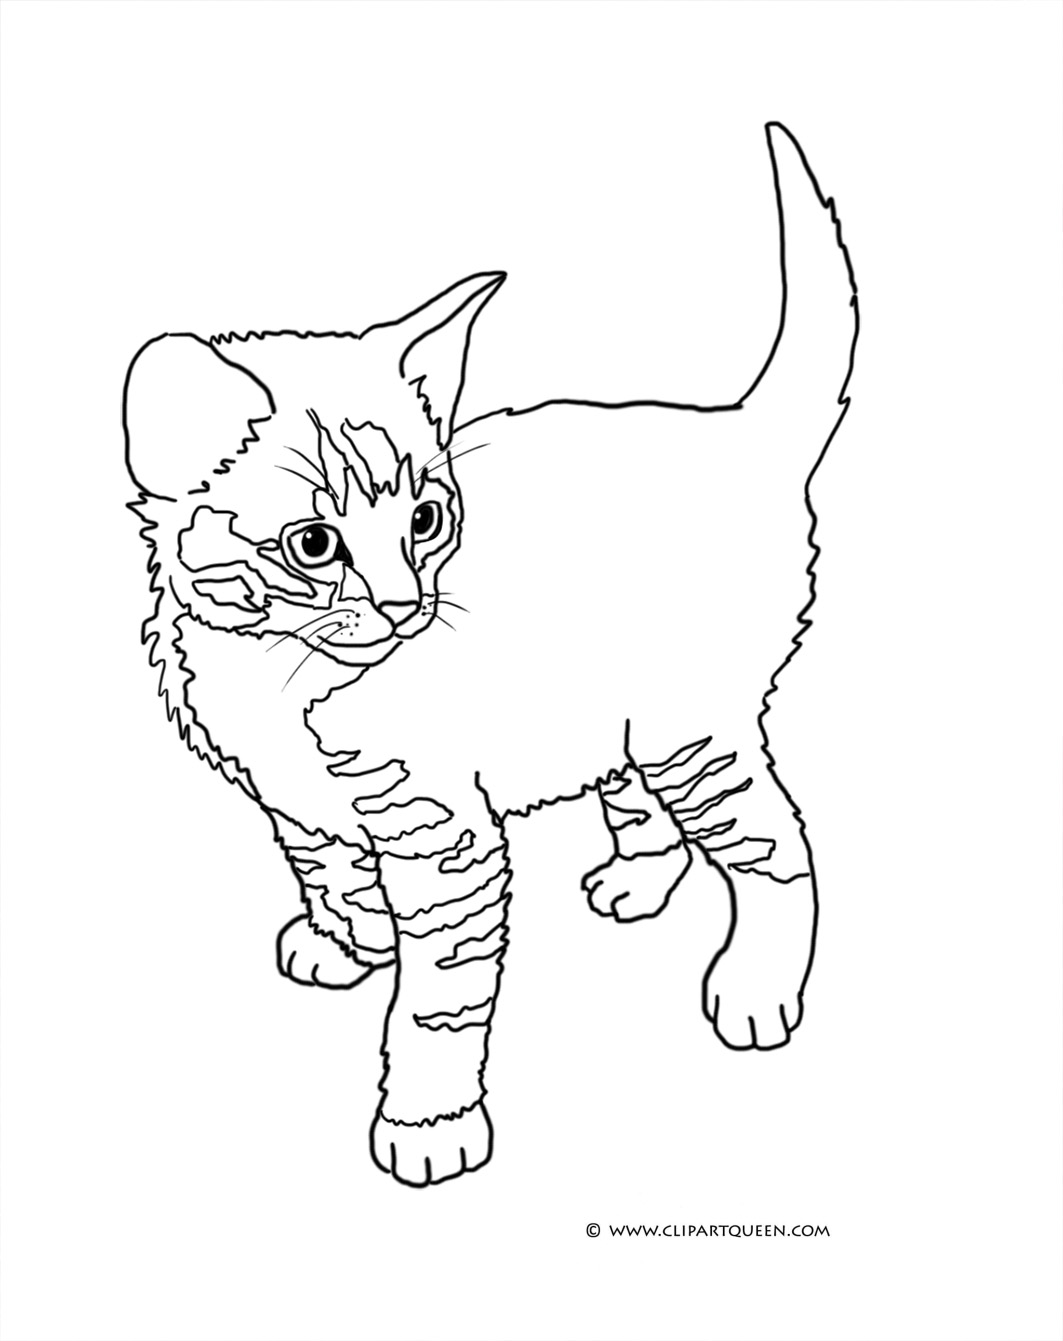 printable cat pictures to color free free printable cat pictures download free clip art pictures color printable cat to